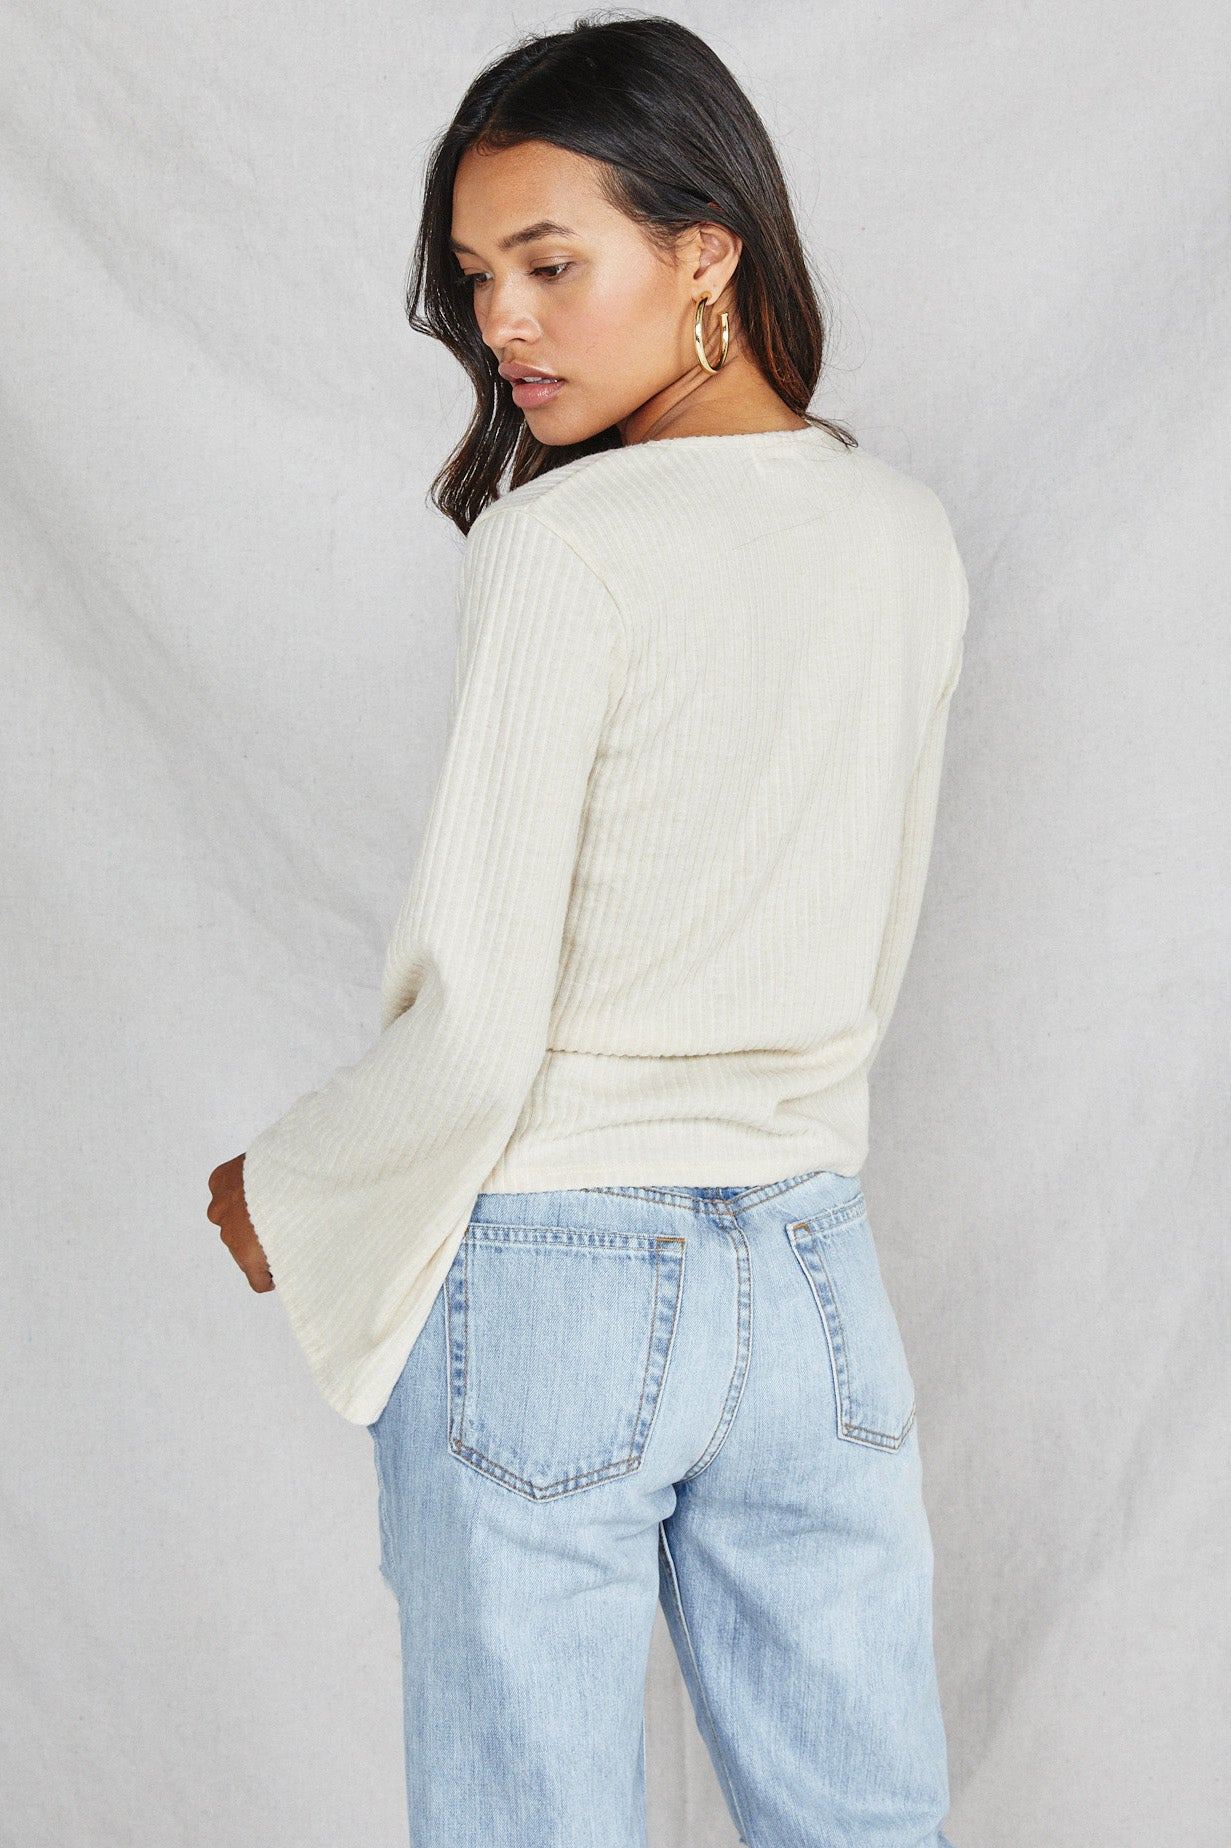 Maggie May Long Sleeve